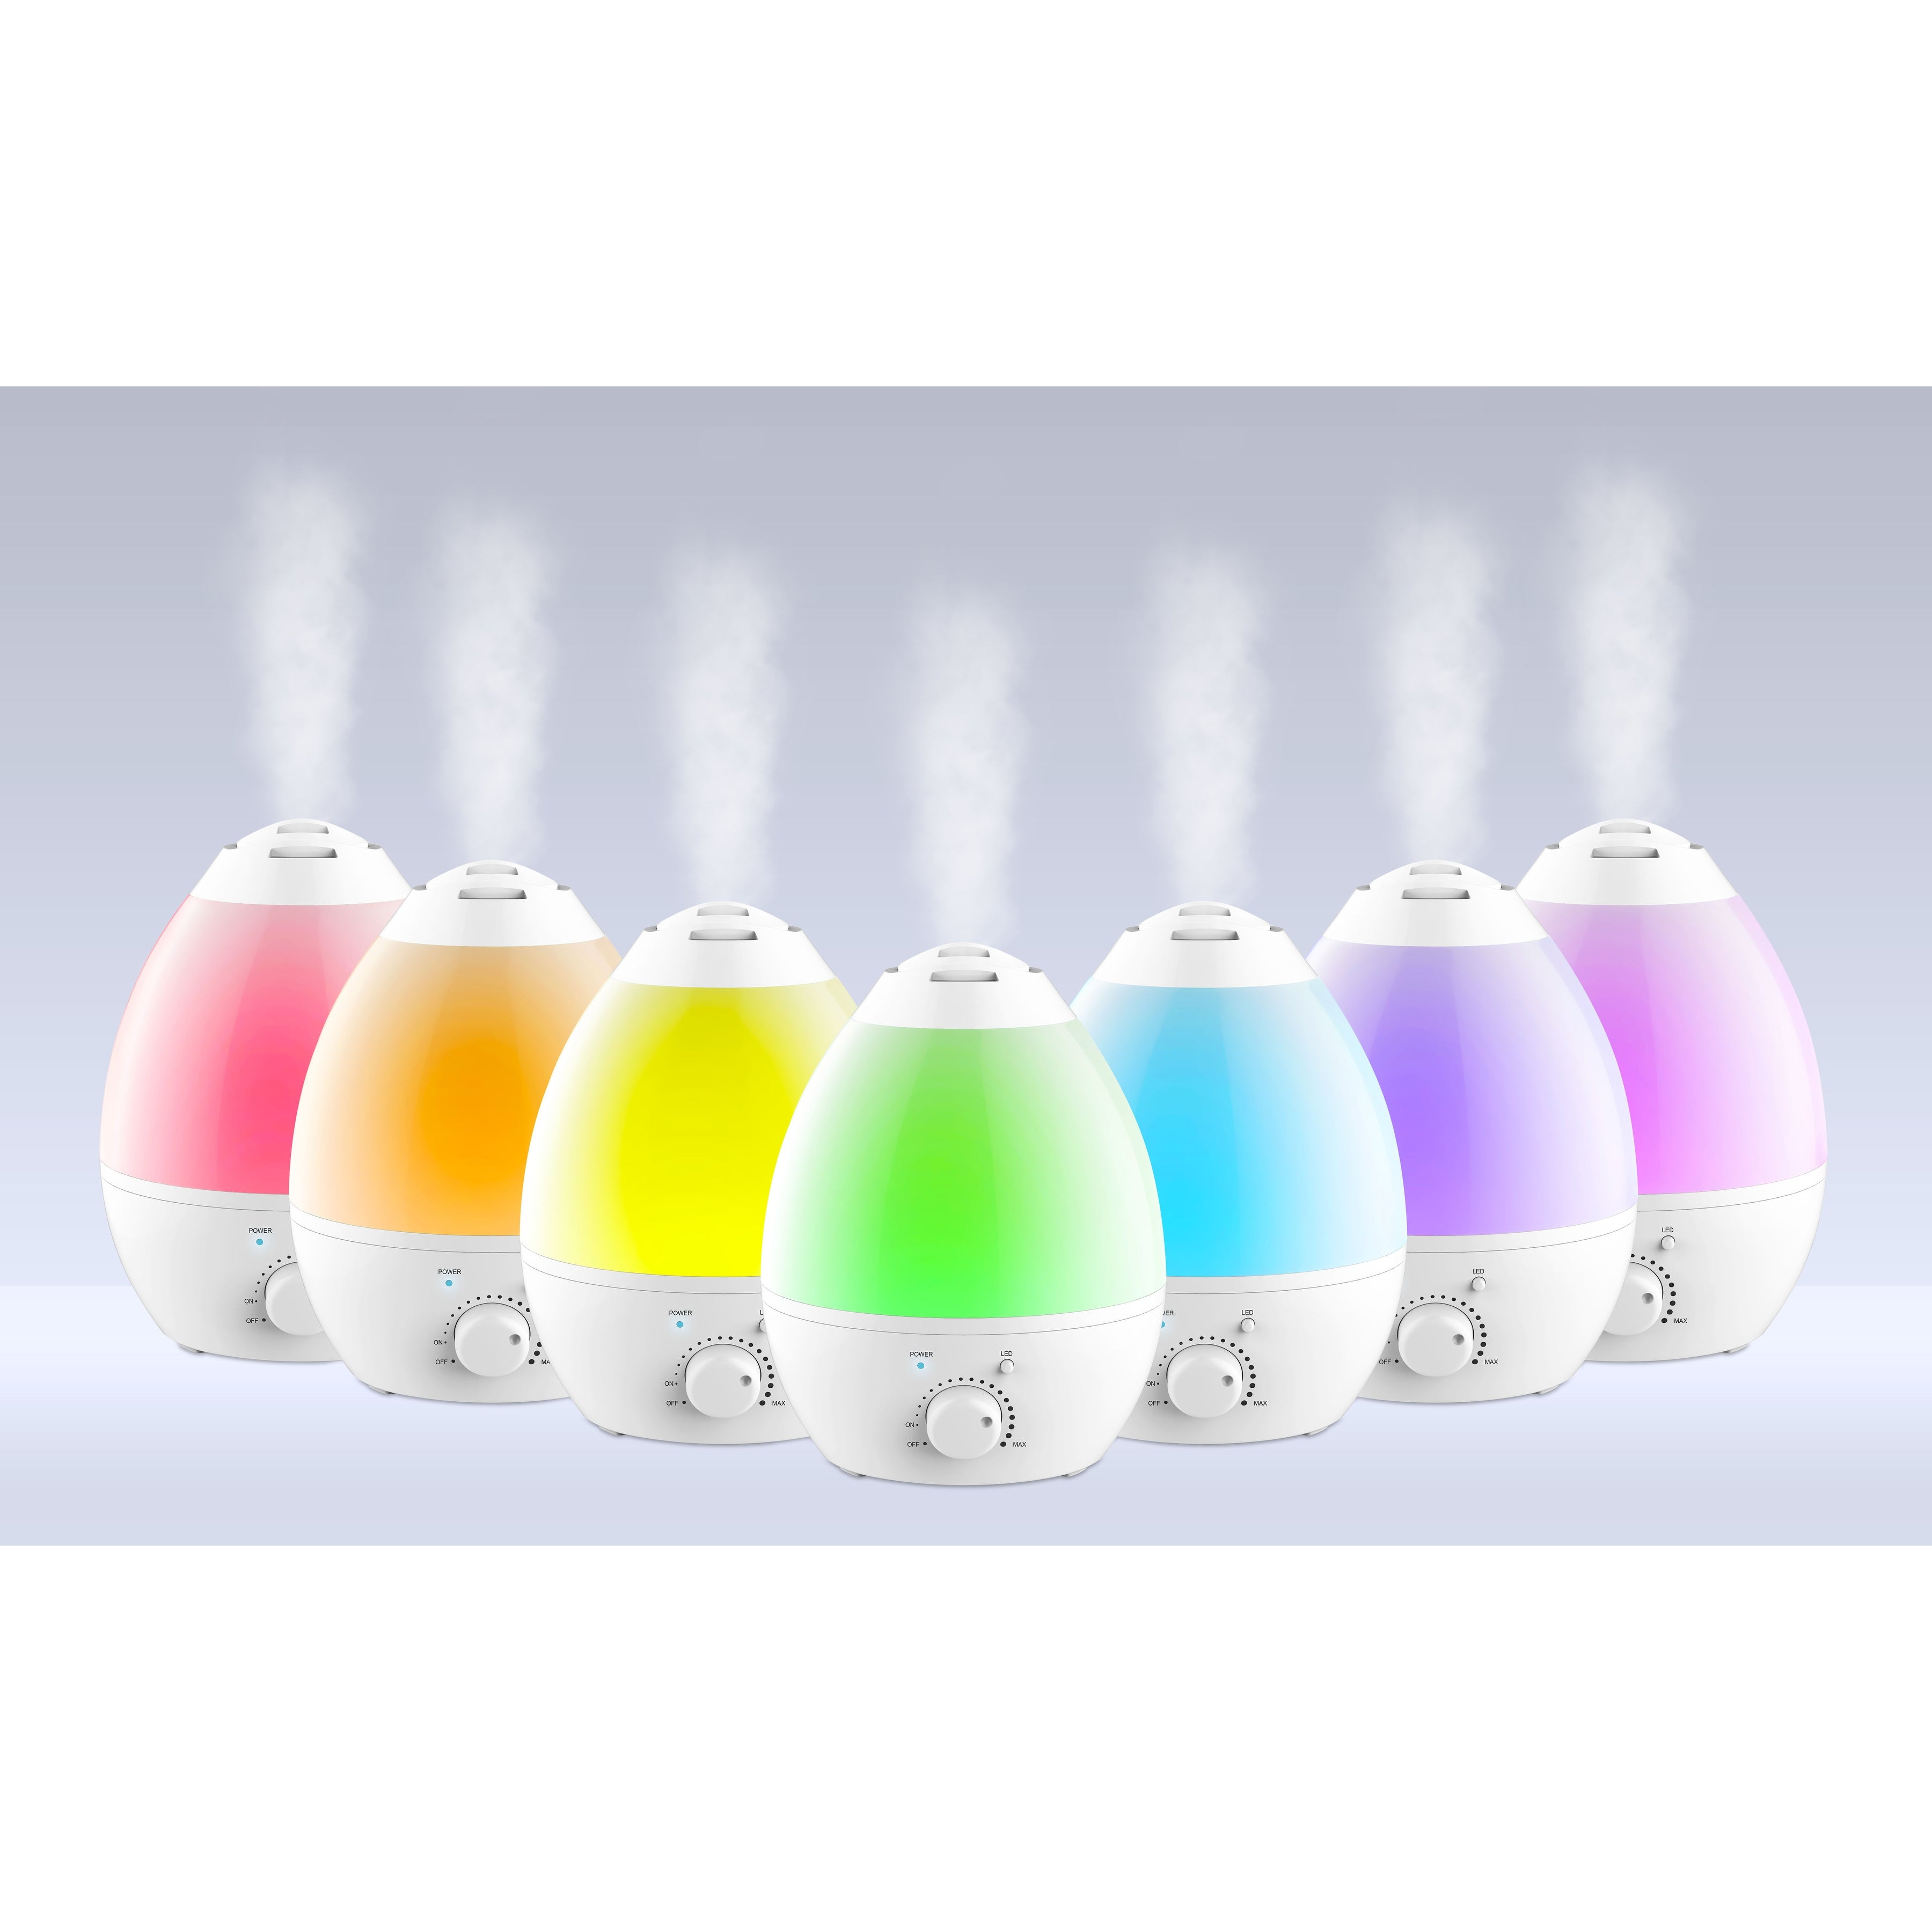 Bell & Howell Ultrasonic Color Changing Aroma Diffuser Humidifier, White - Thumbnail 0